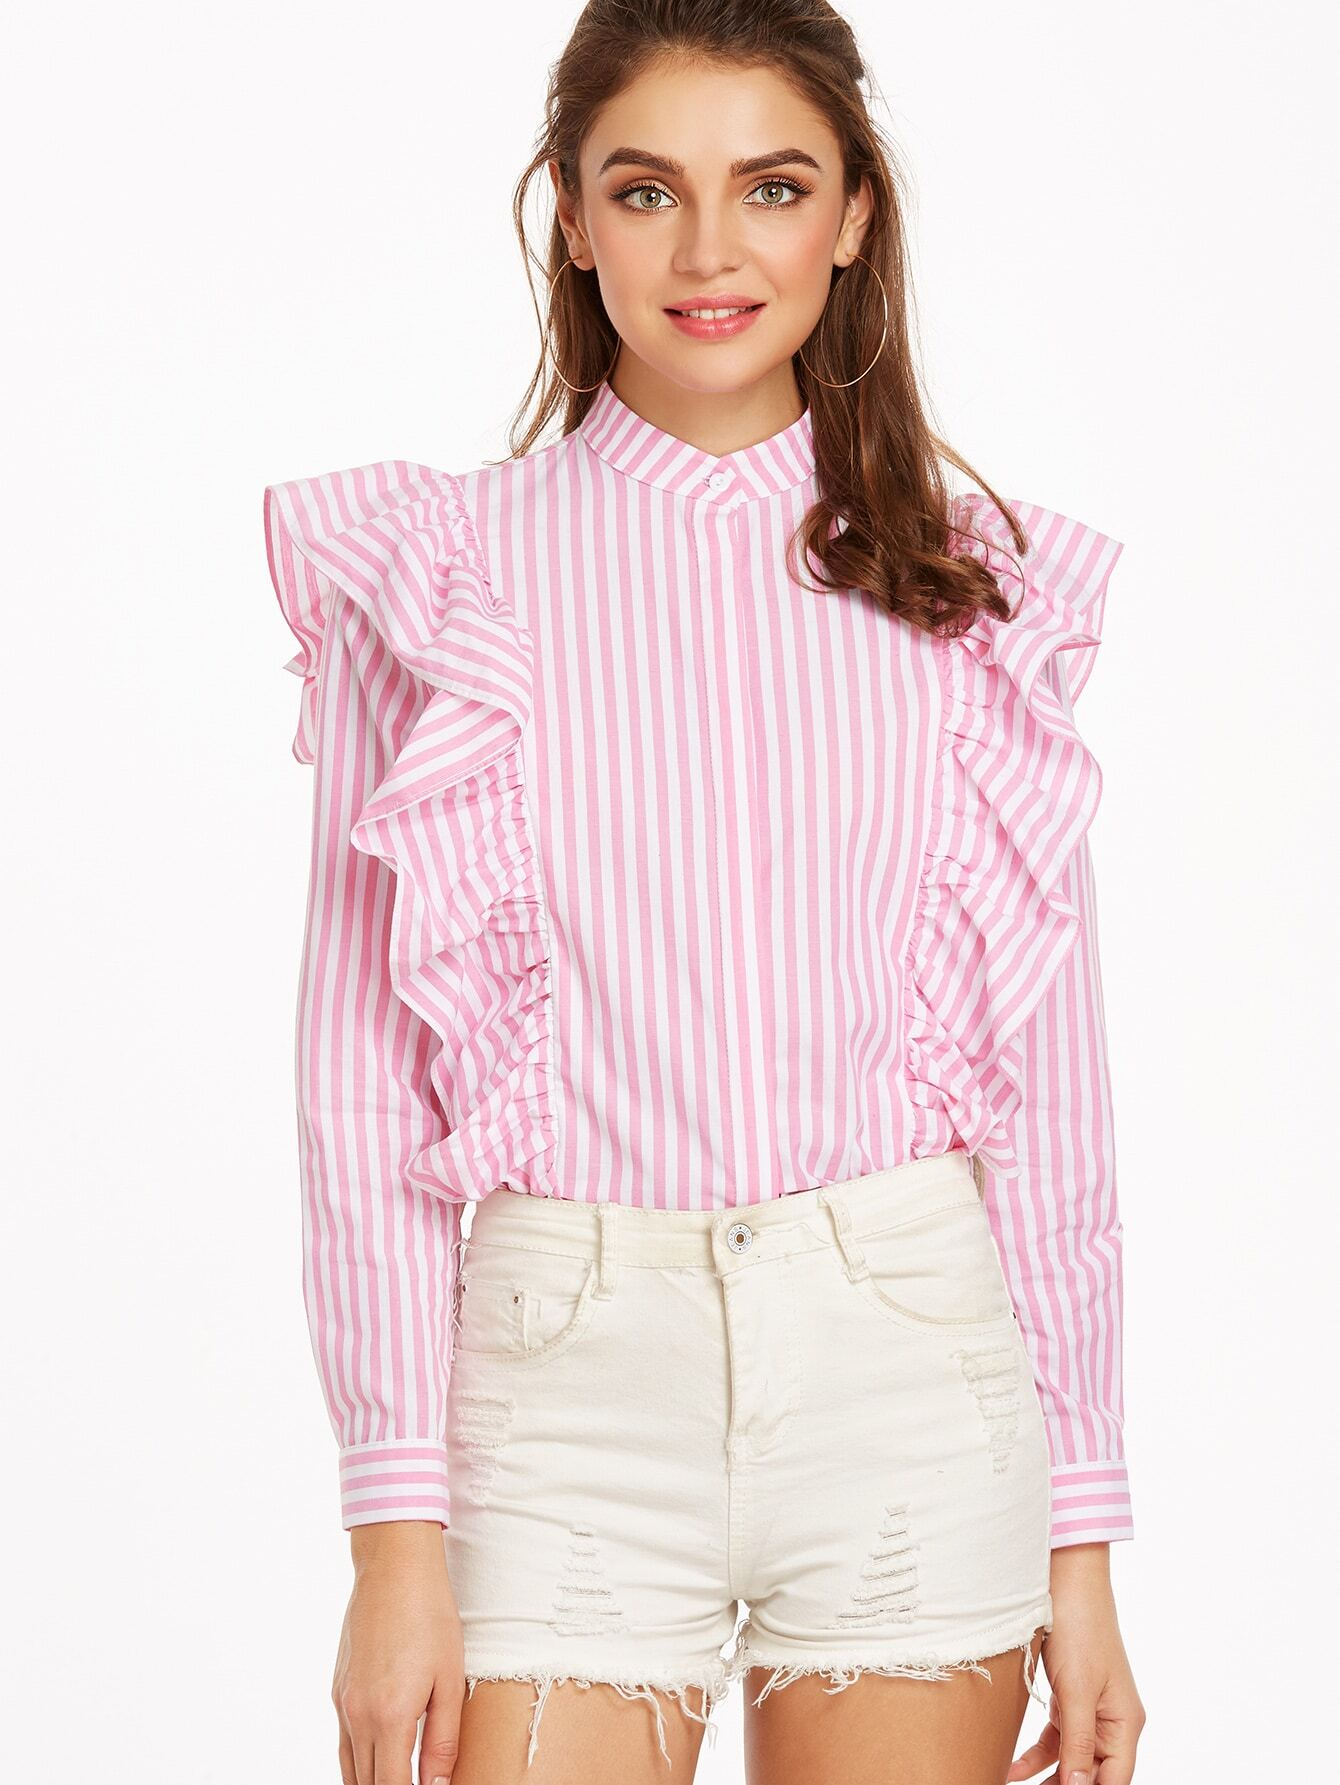 Ruffled Collar Blouses. invalid category id. Ruffled Collar Blouses. Showing 40 of 52 results that match your query. Search Product Result. Product - Plussize Very Lovely Ruffles Sleeves Round Neck Blouse Tops. Product Image. Price $ Product Title. Plussize Very Lovely Ruffles Sleeves Round Neck Blouse .